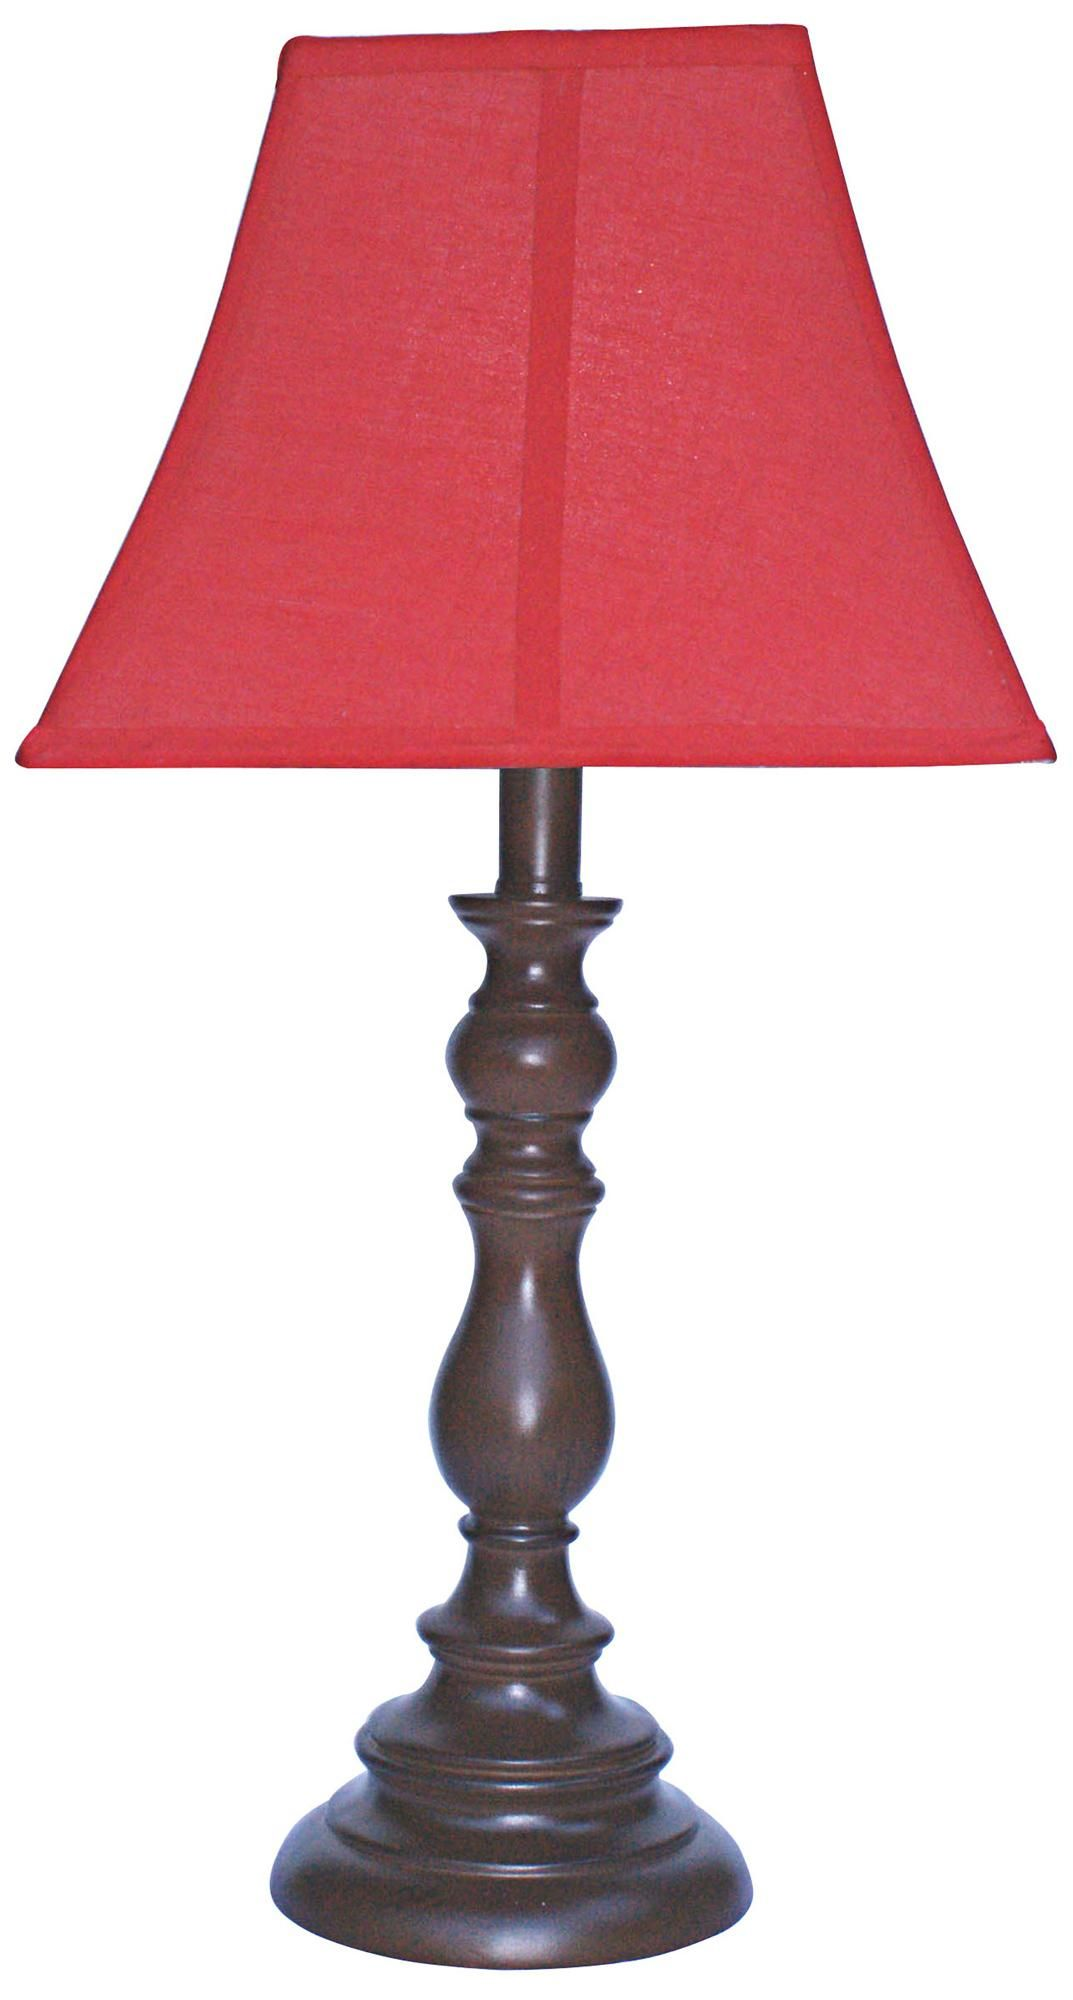 Baby Table Lamps Red Shade With Brown Candlestick Base Table Lamp For